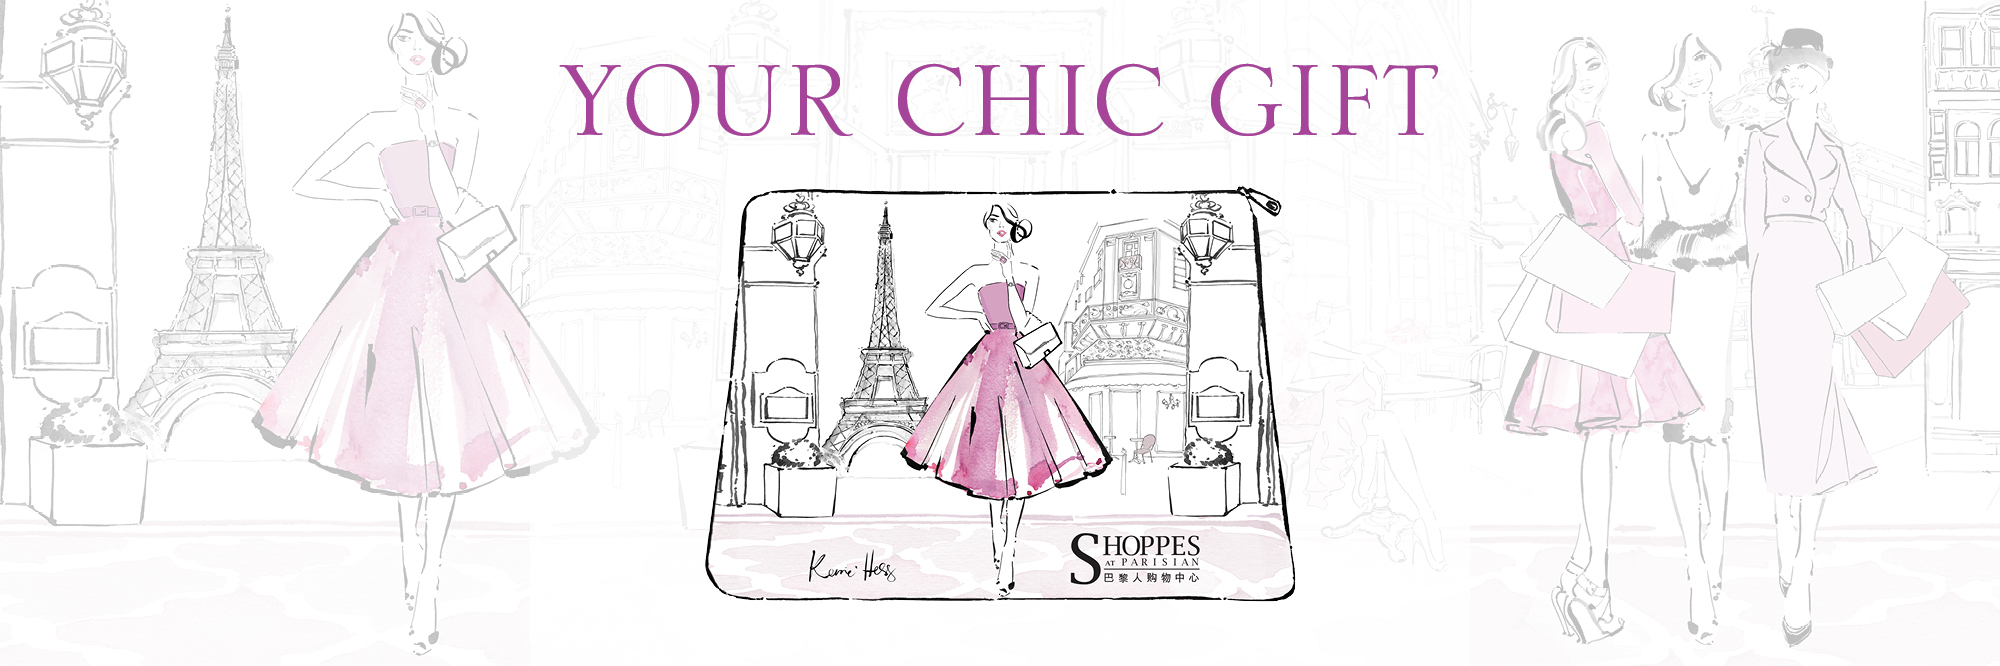 Parisian Macao Front Row Your Chic Gift